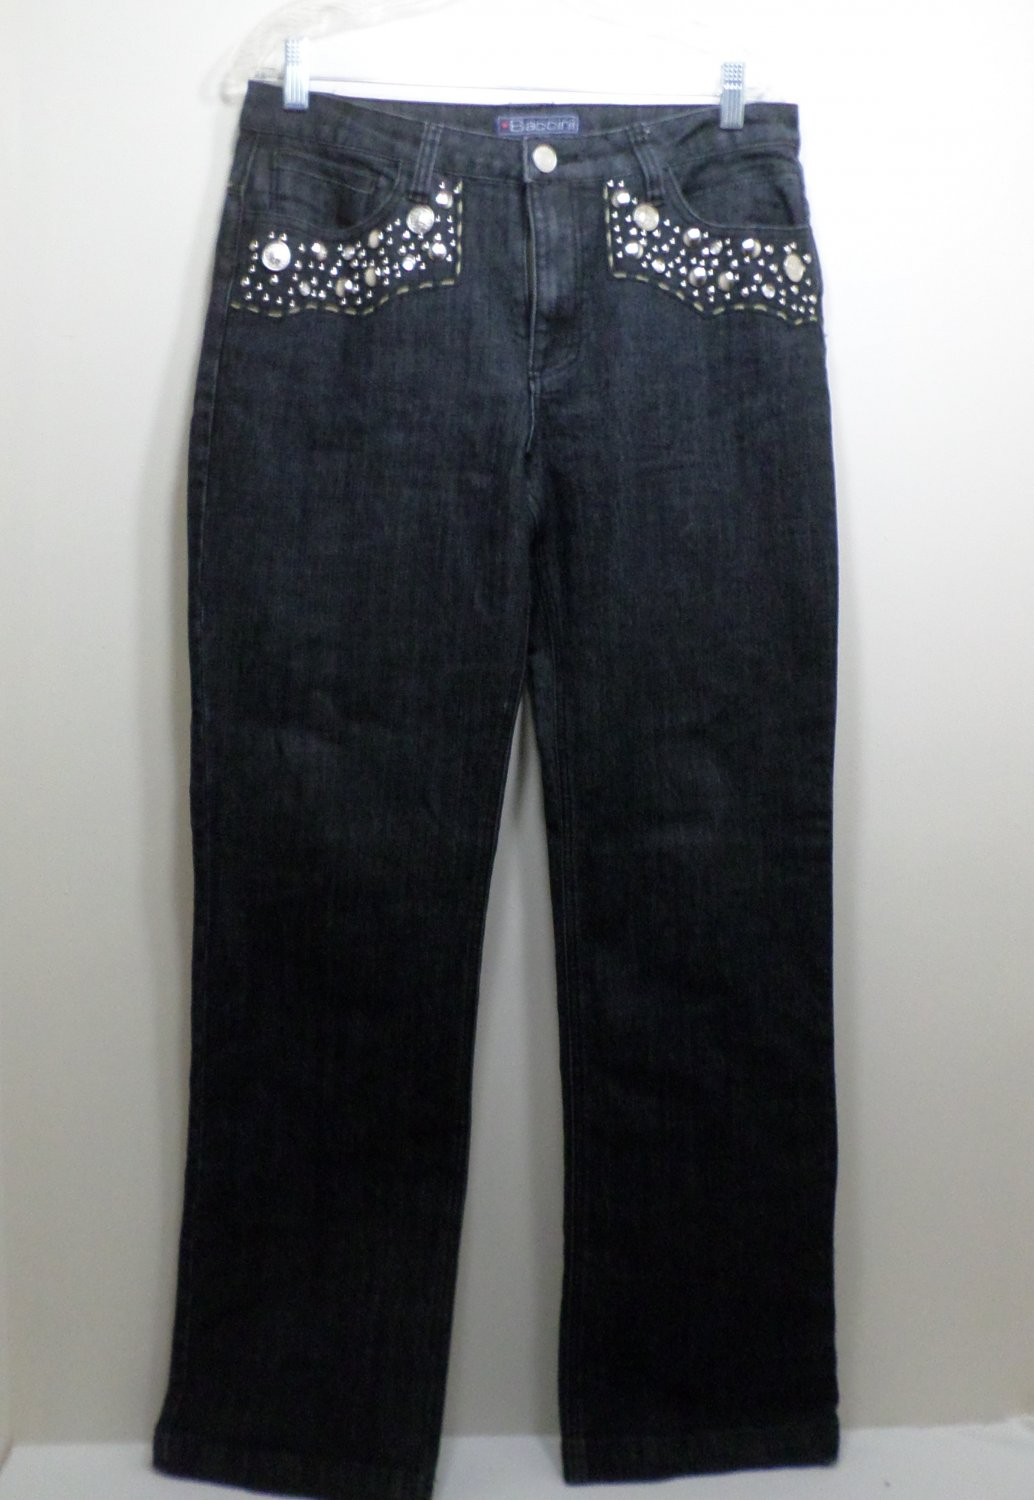 Women's Jeans Size 12 Blue with Silver Rivets on the Front and Back Pockets by Baccini